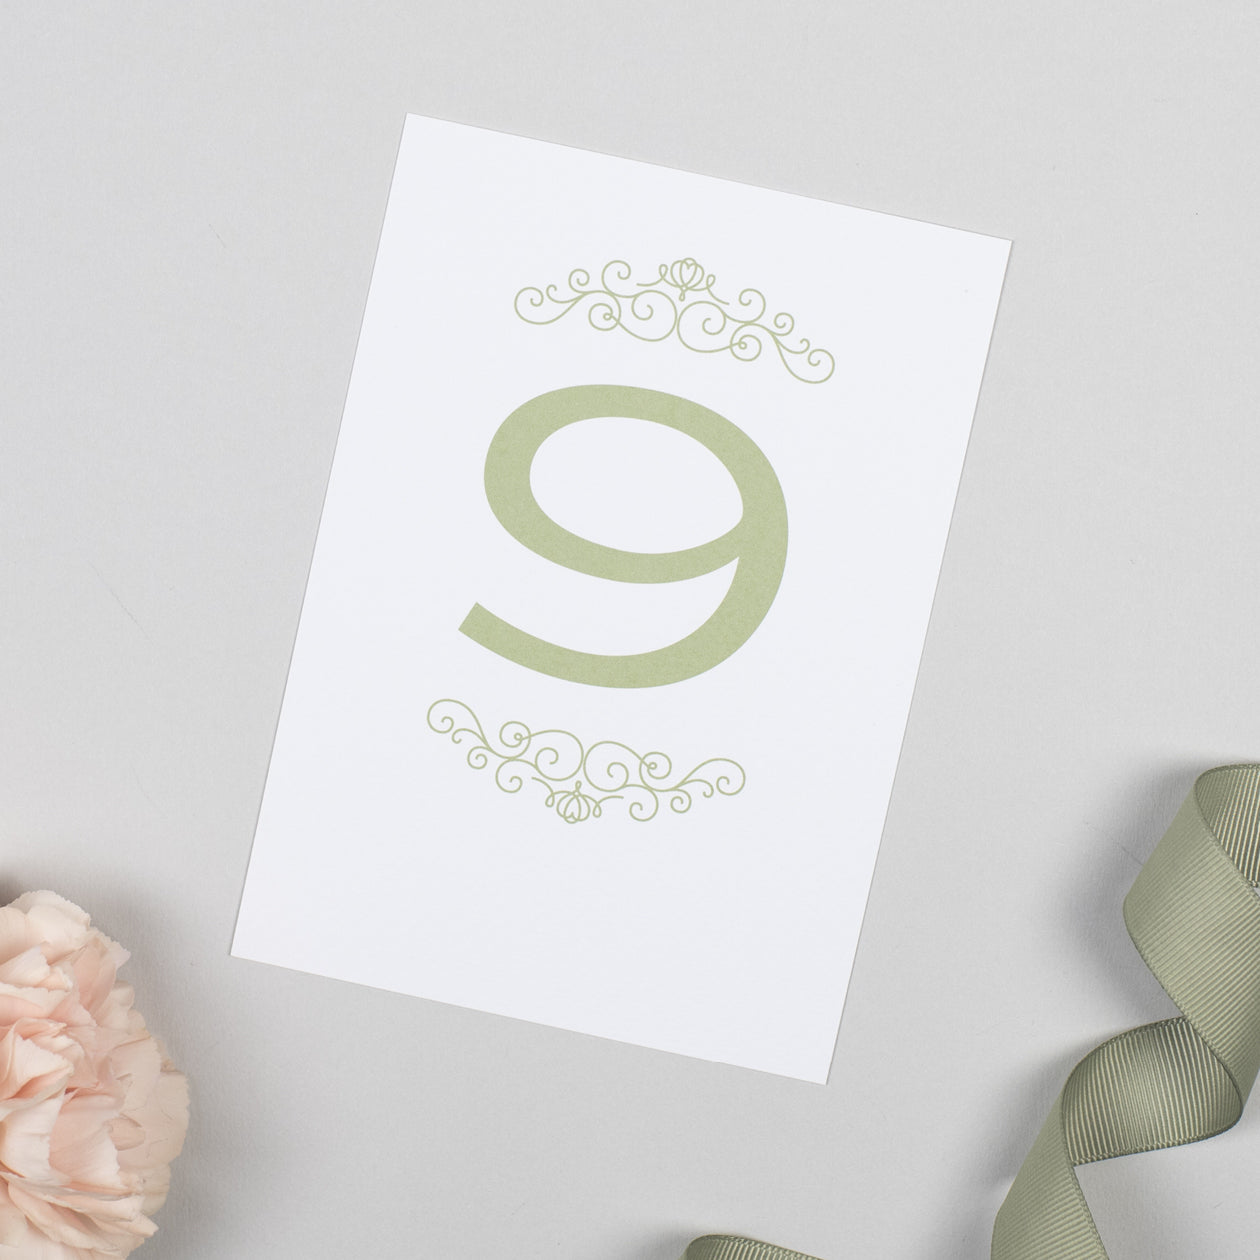 Eva Table numbers